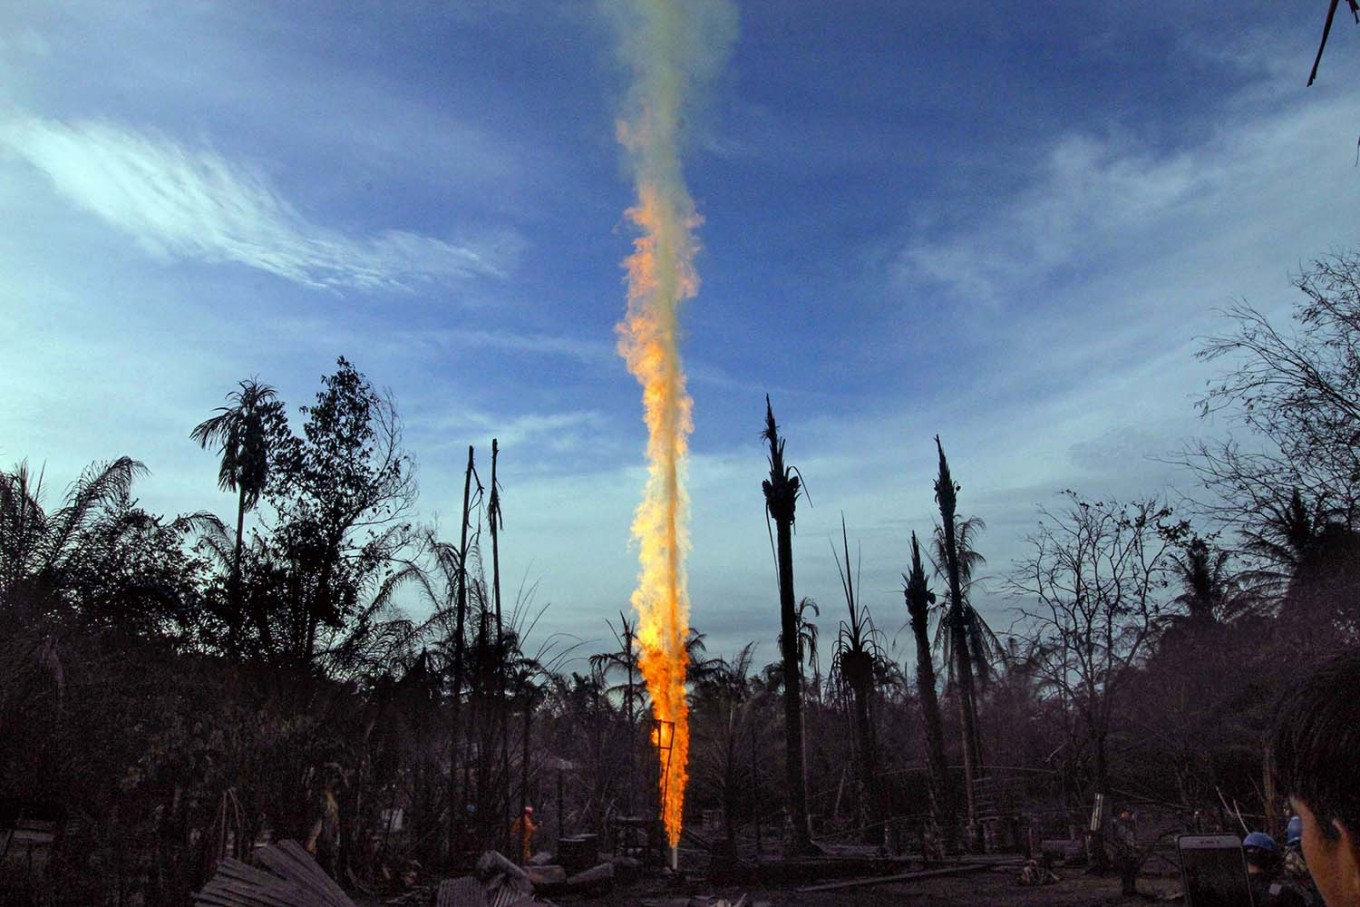 Death toll from Aceh oil well fire increases to 22